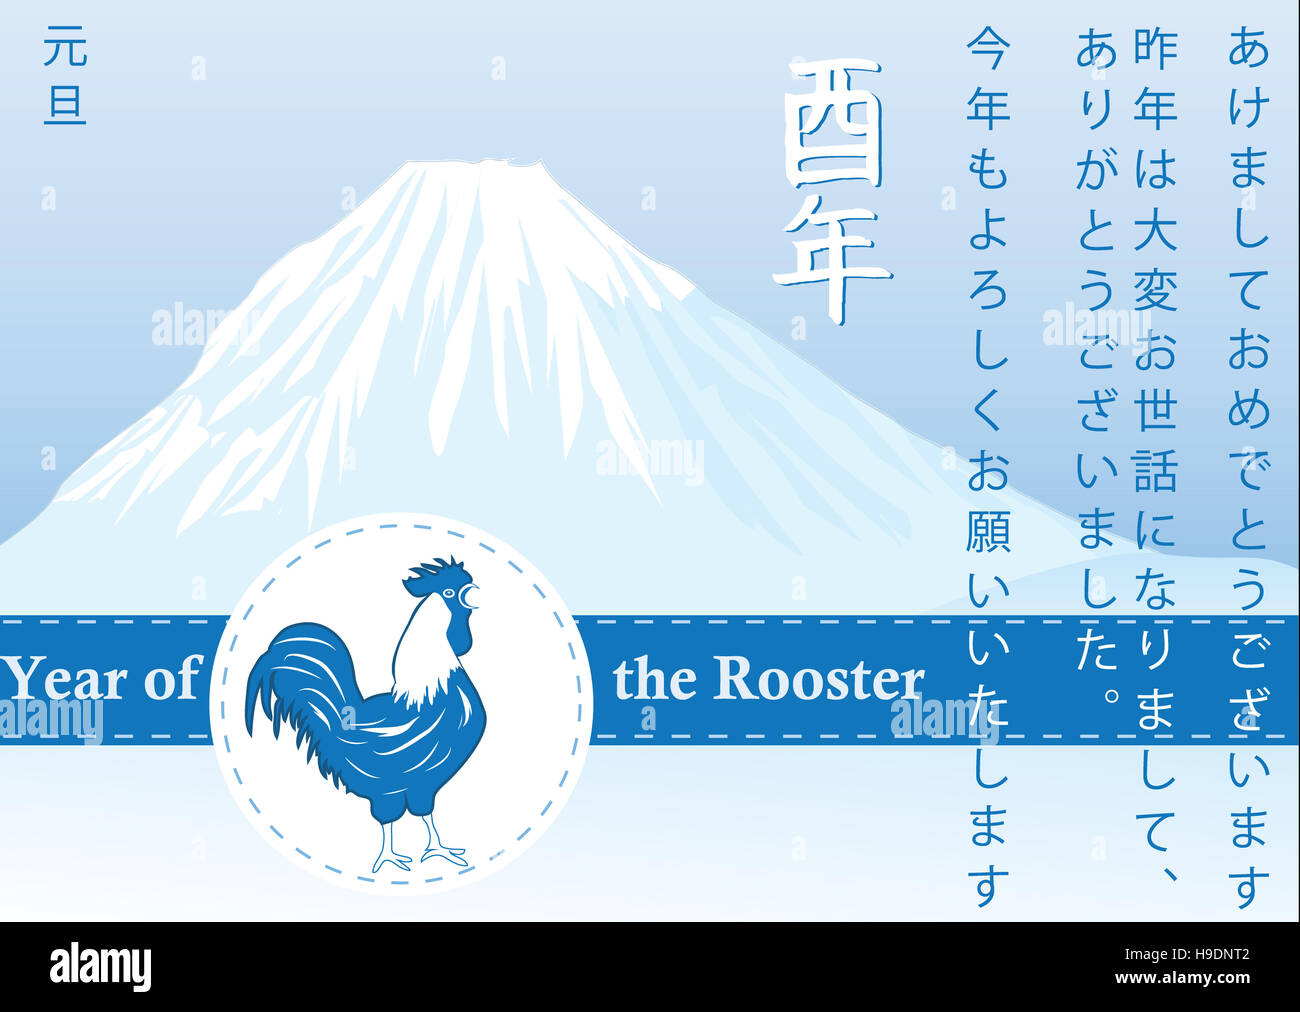 Year of the rooster japanese new year greeting card 2017 text year of the rooster japanese new year greeting card 2017 text meaning congratulations on the new year japanese expression m4hsunfo